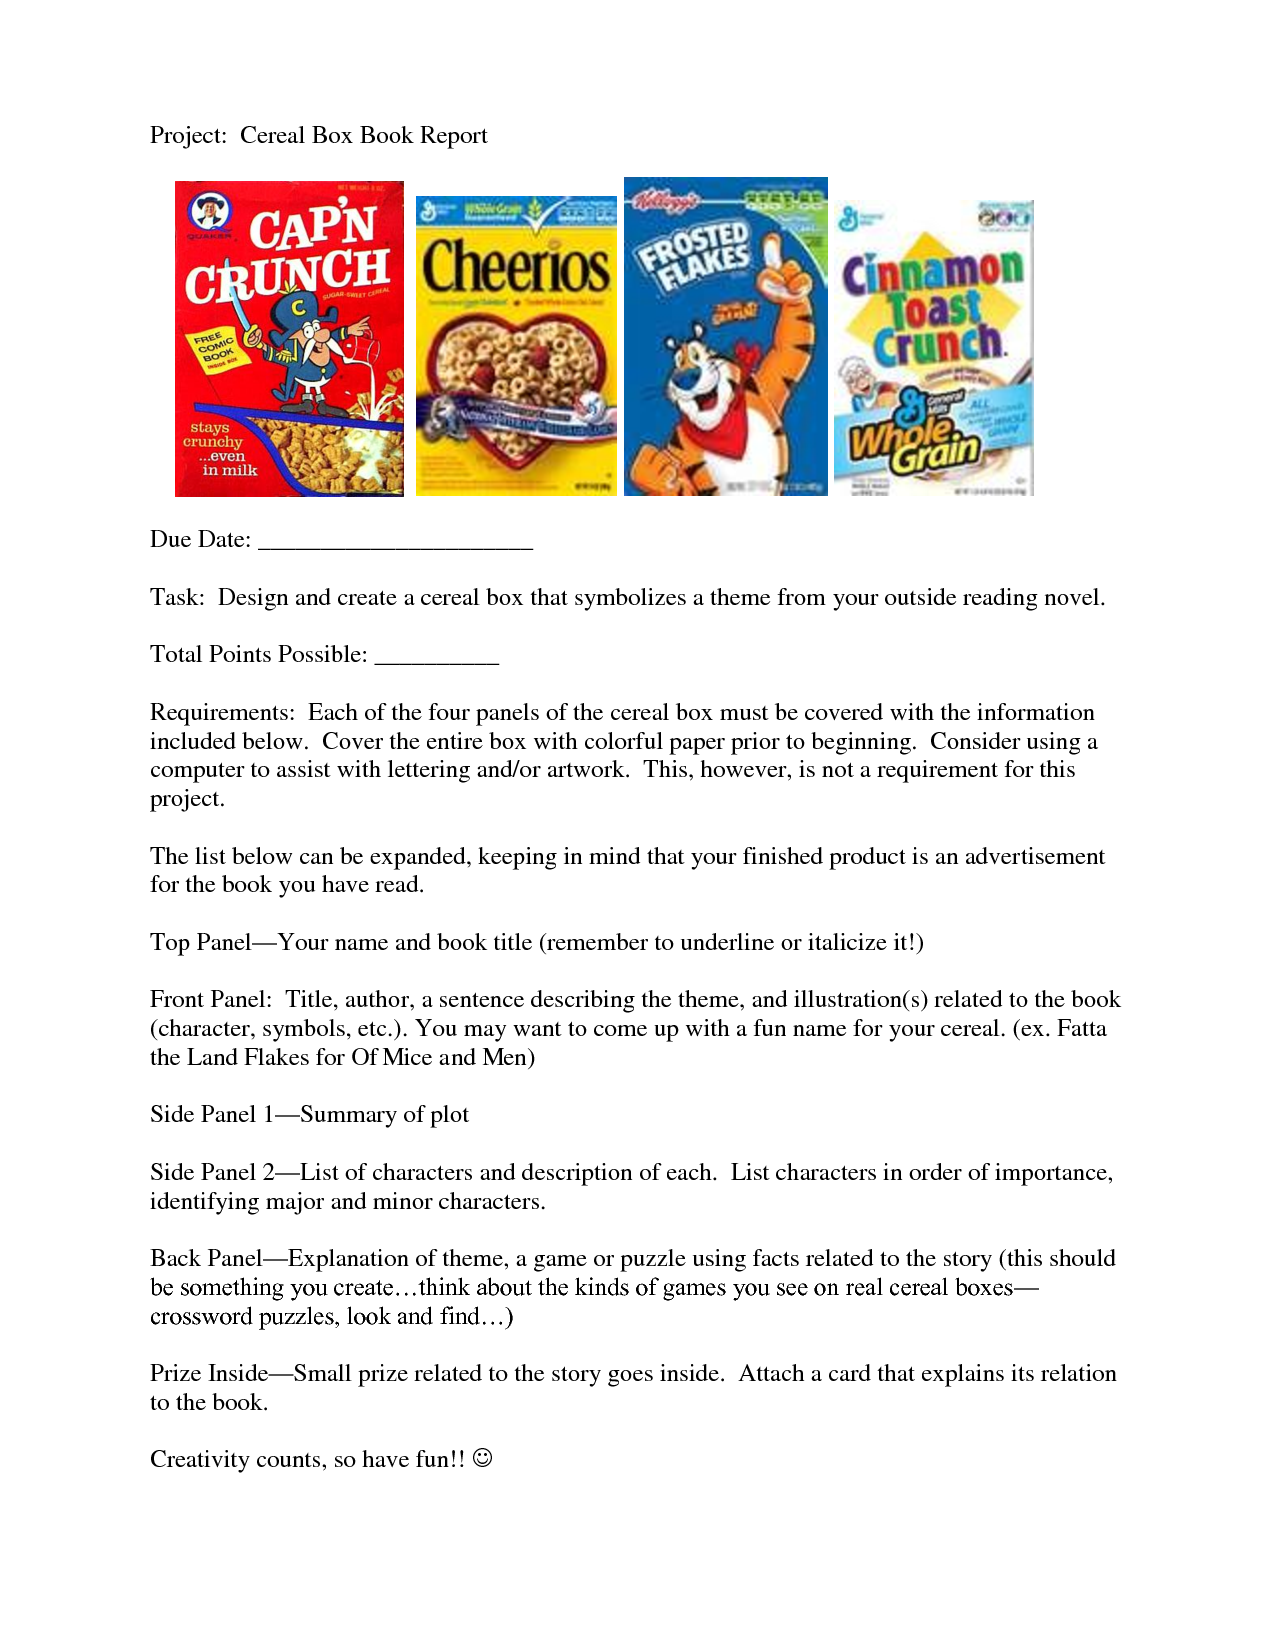 Cereal Box Book Report Template | Project Cereal Box Book Report